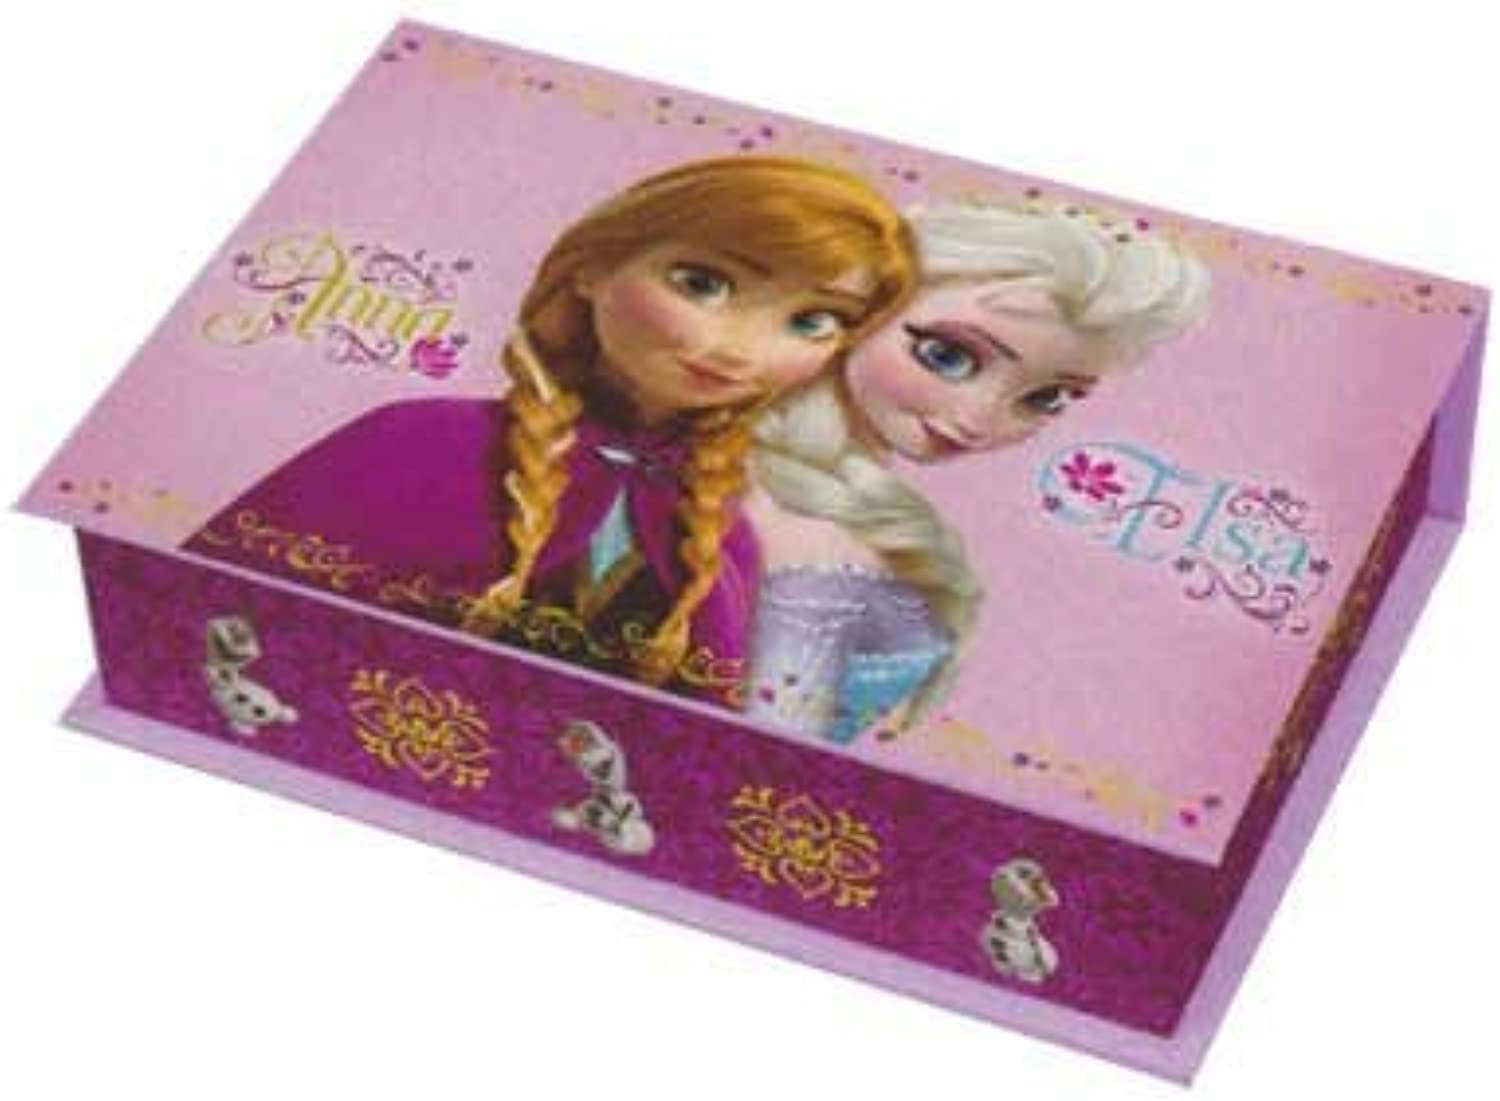 Ana and queen premium small music box pink single item with a purse of snow